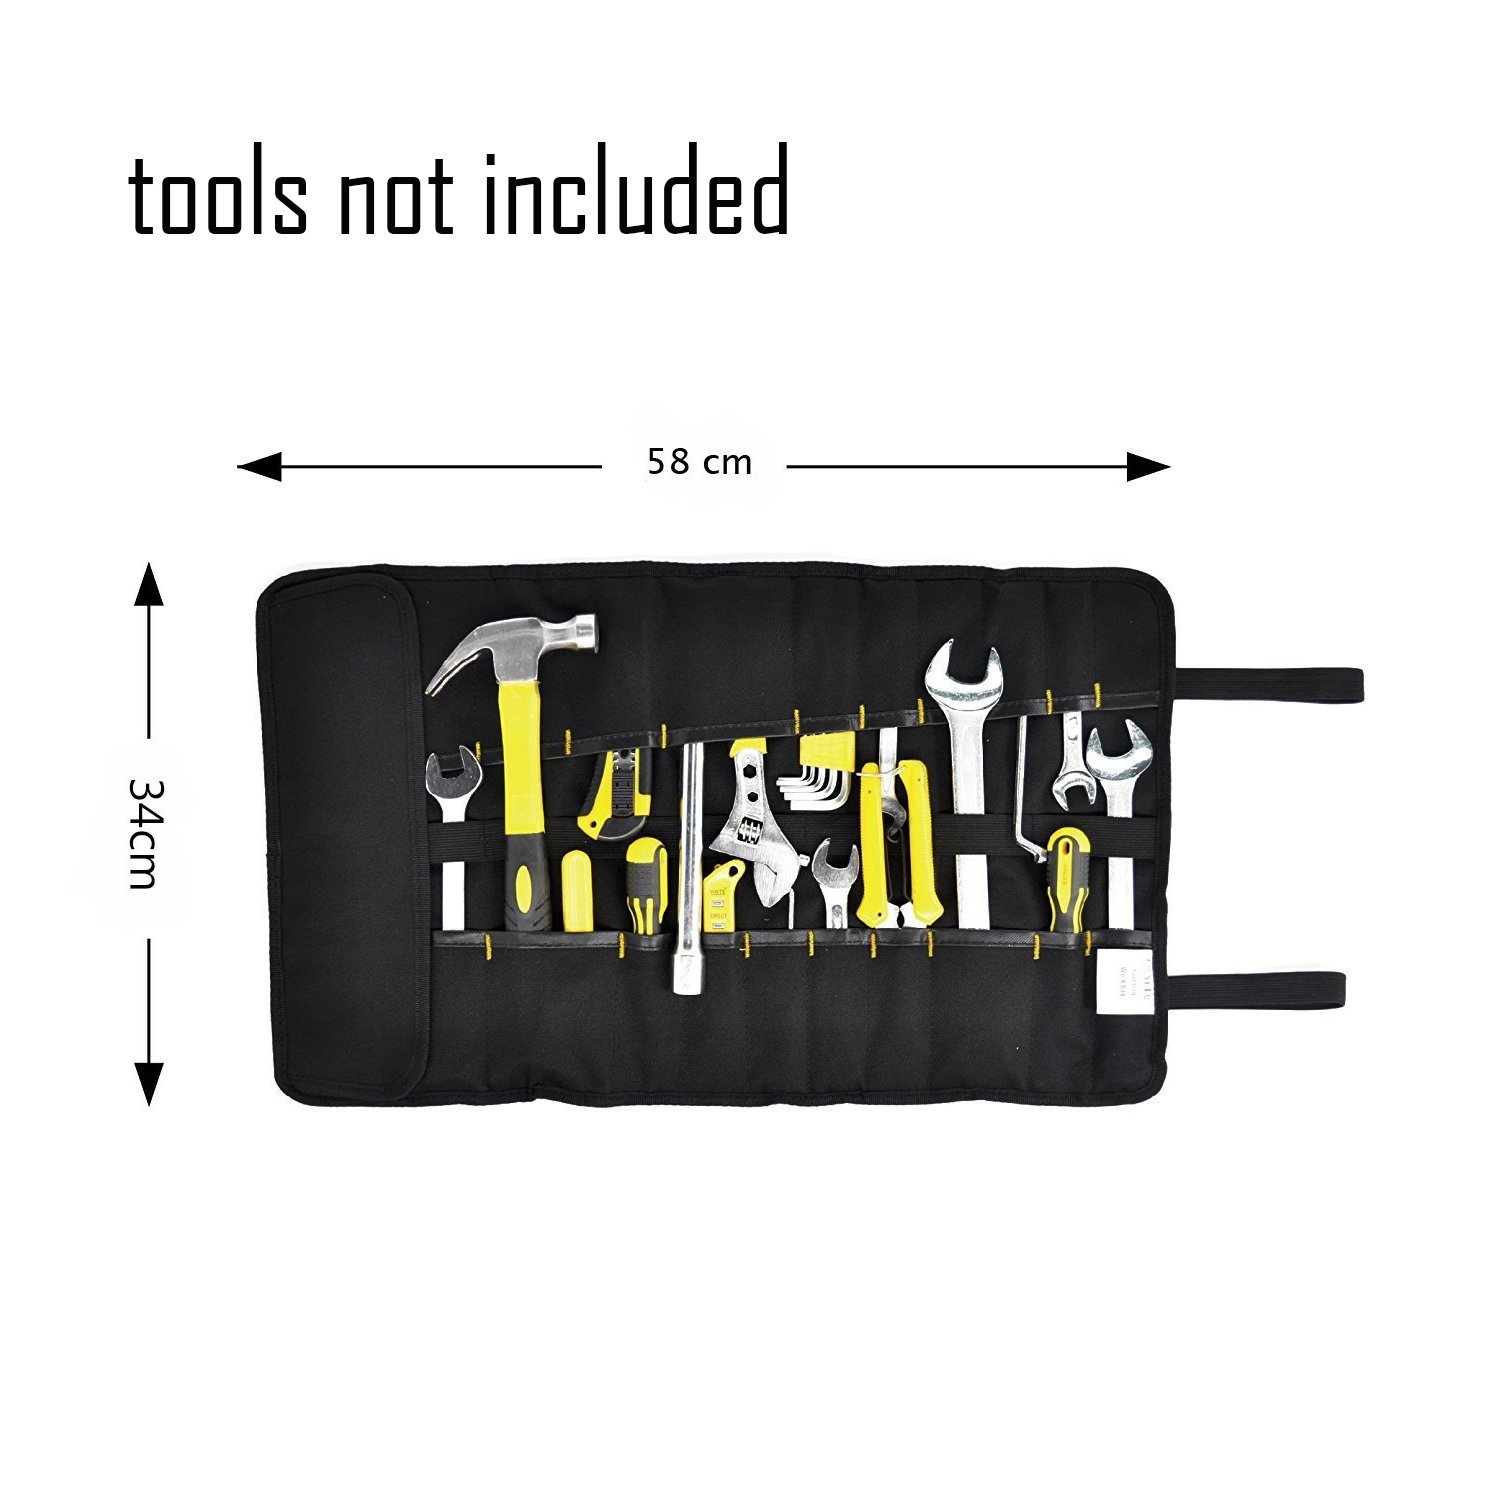 FASITE 35 Pockets Multi Purpose Tool Roll Up Wrench Pouch Organizer with Handle for Handymen Plumber Craftsmen DIY Fun Enthusias Best Gift for Craftwork (Blue) by BES CHAN (Image #3)